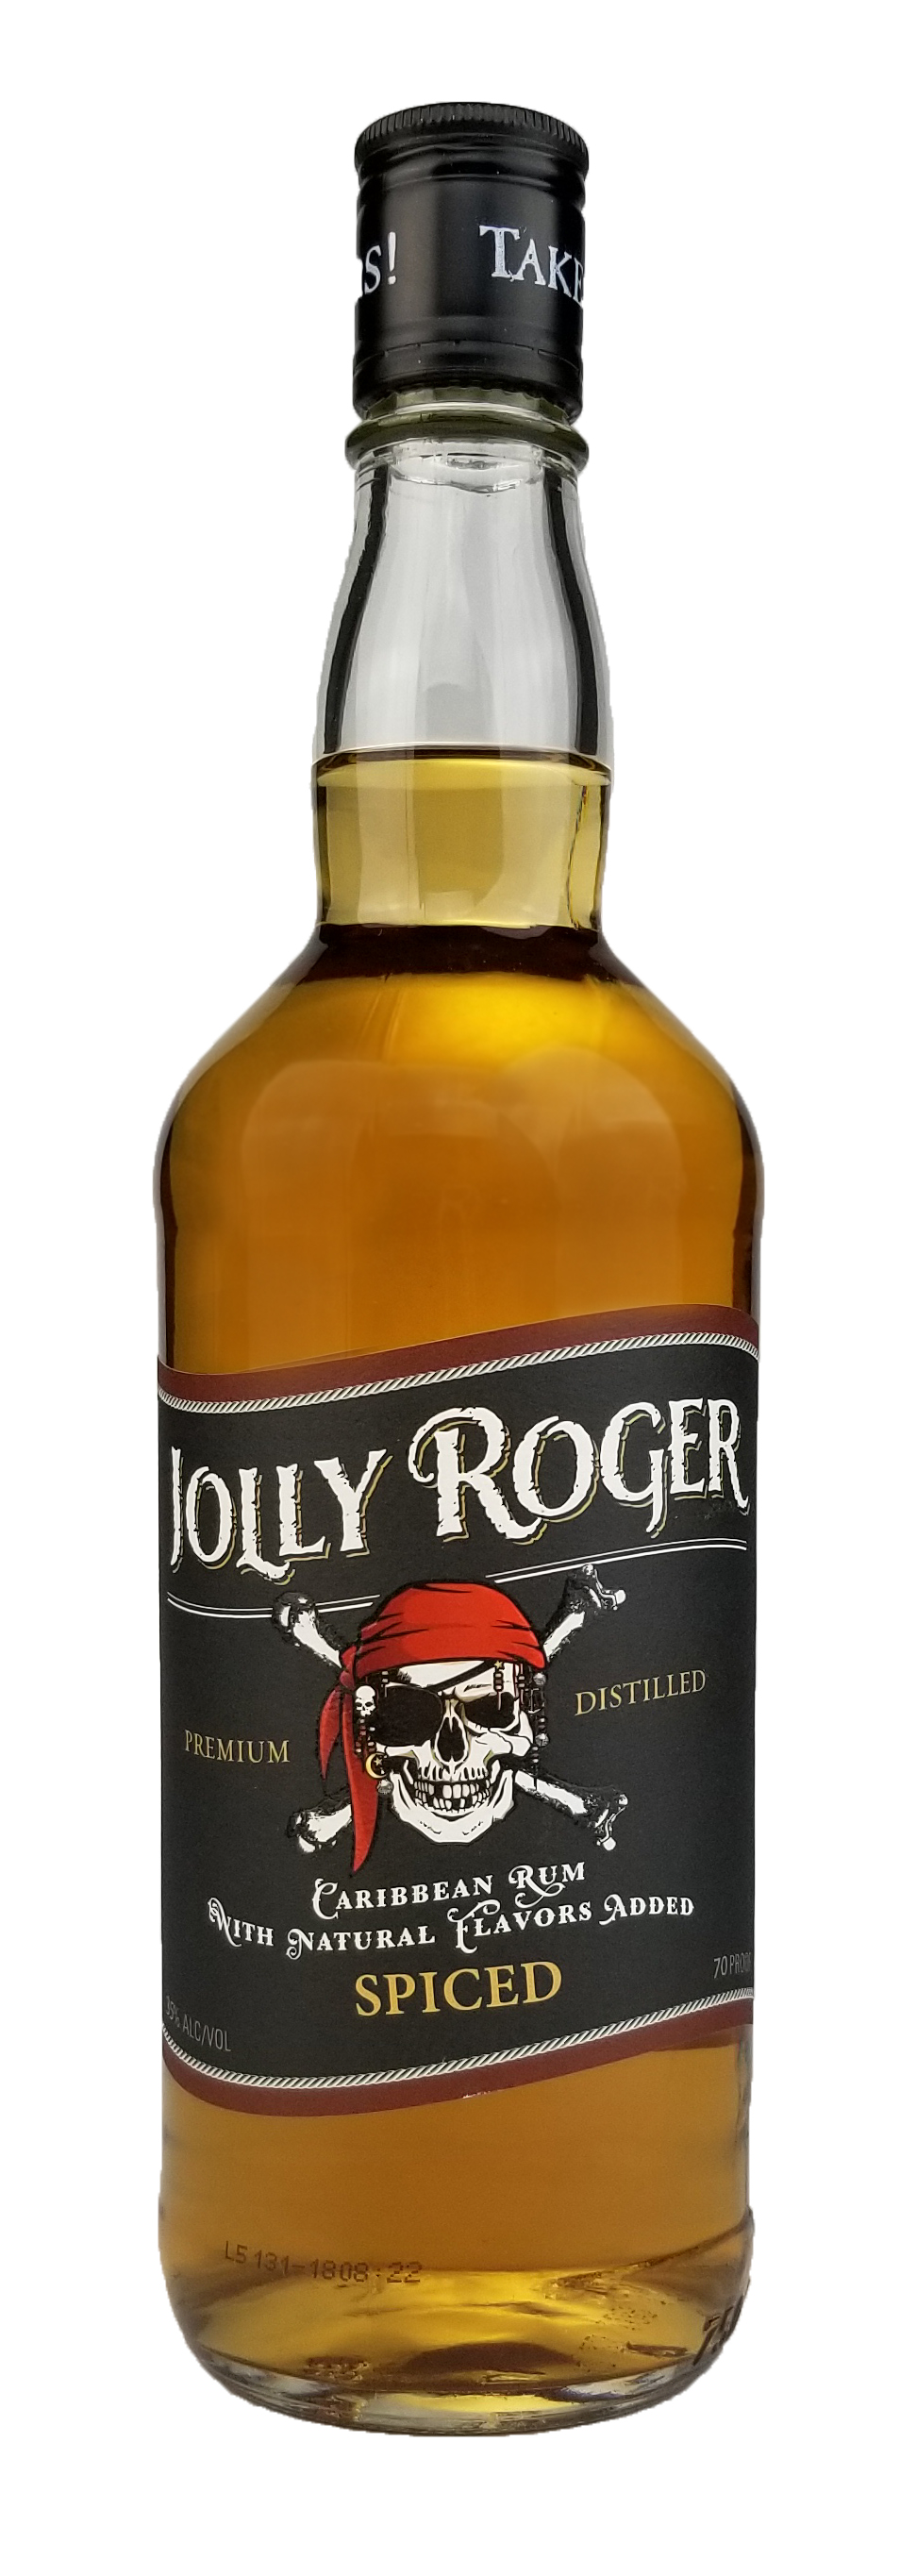 jolly roger spiced.jpg